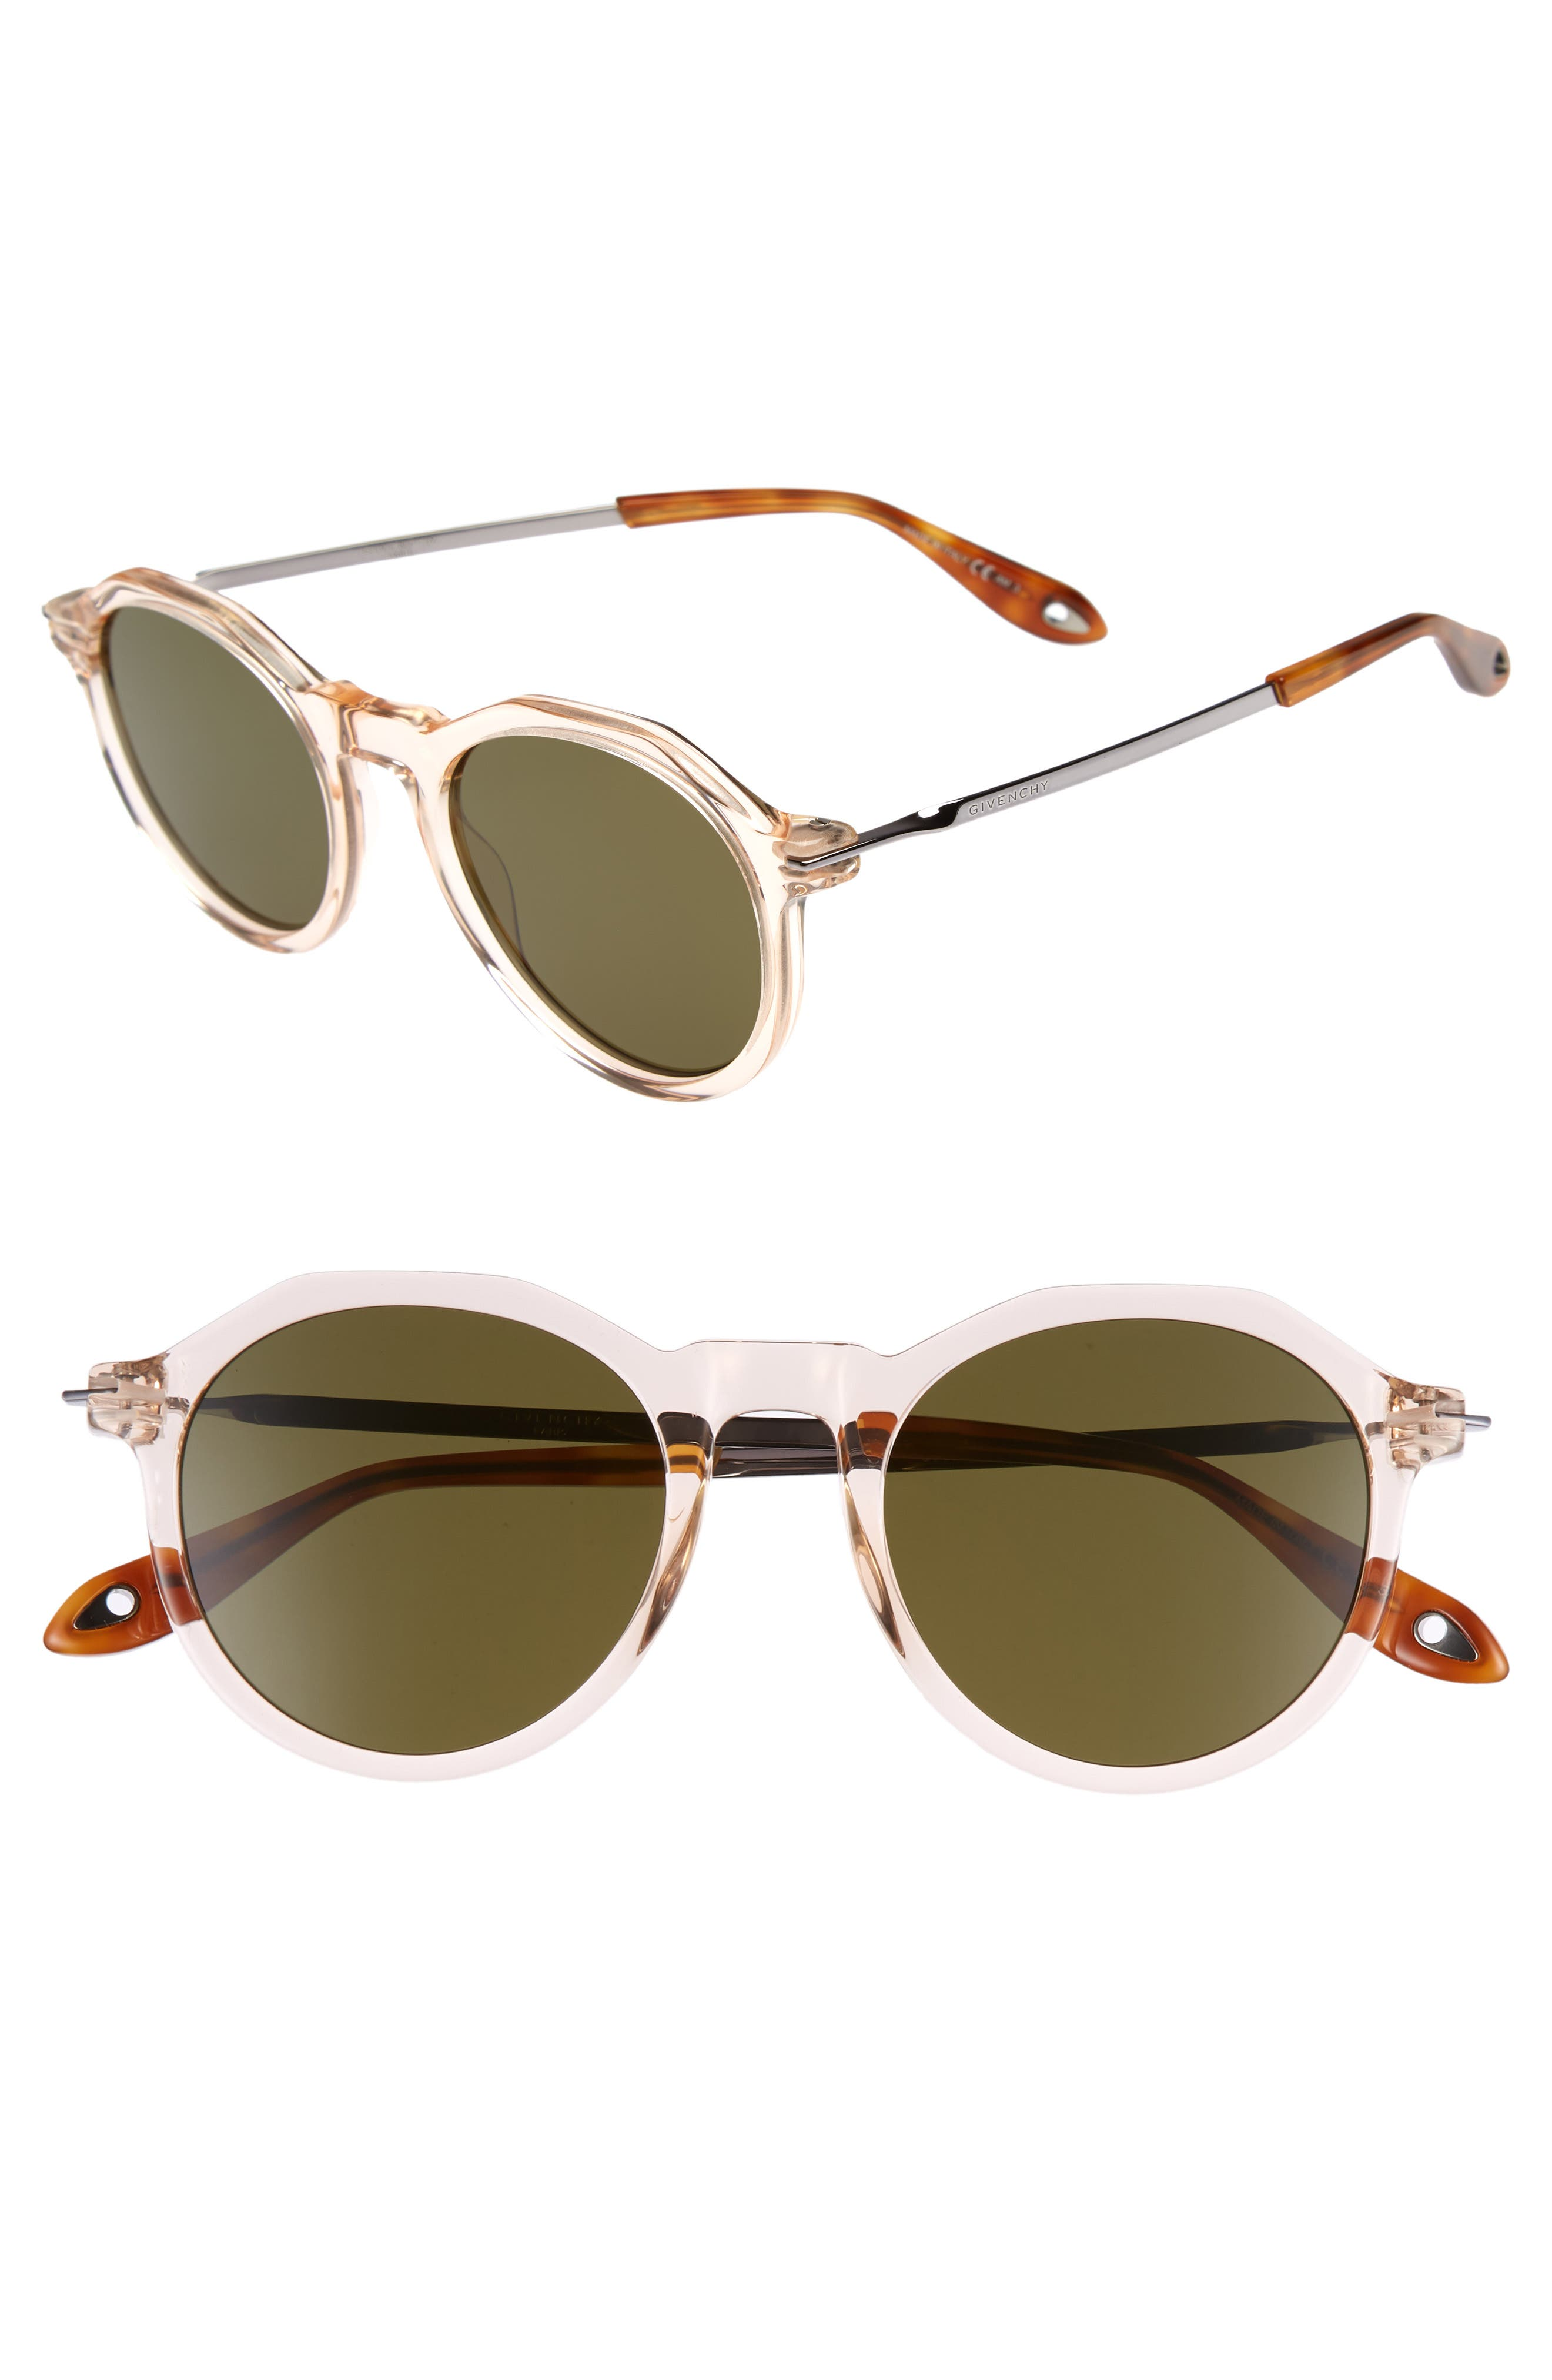 Givenchy 51mm Round Sunglasses